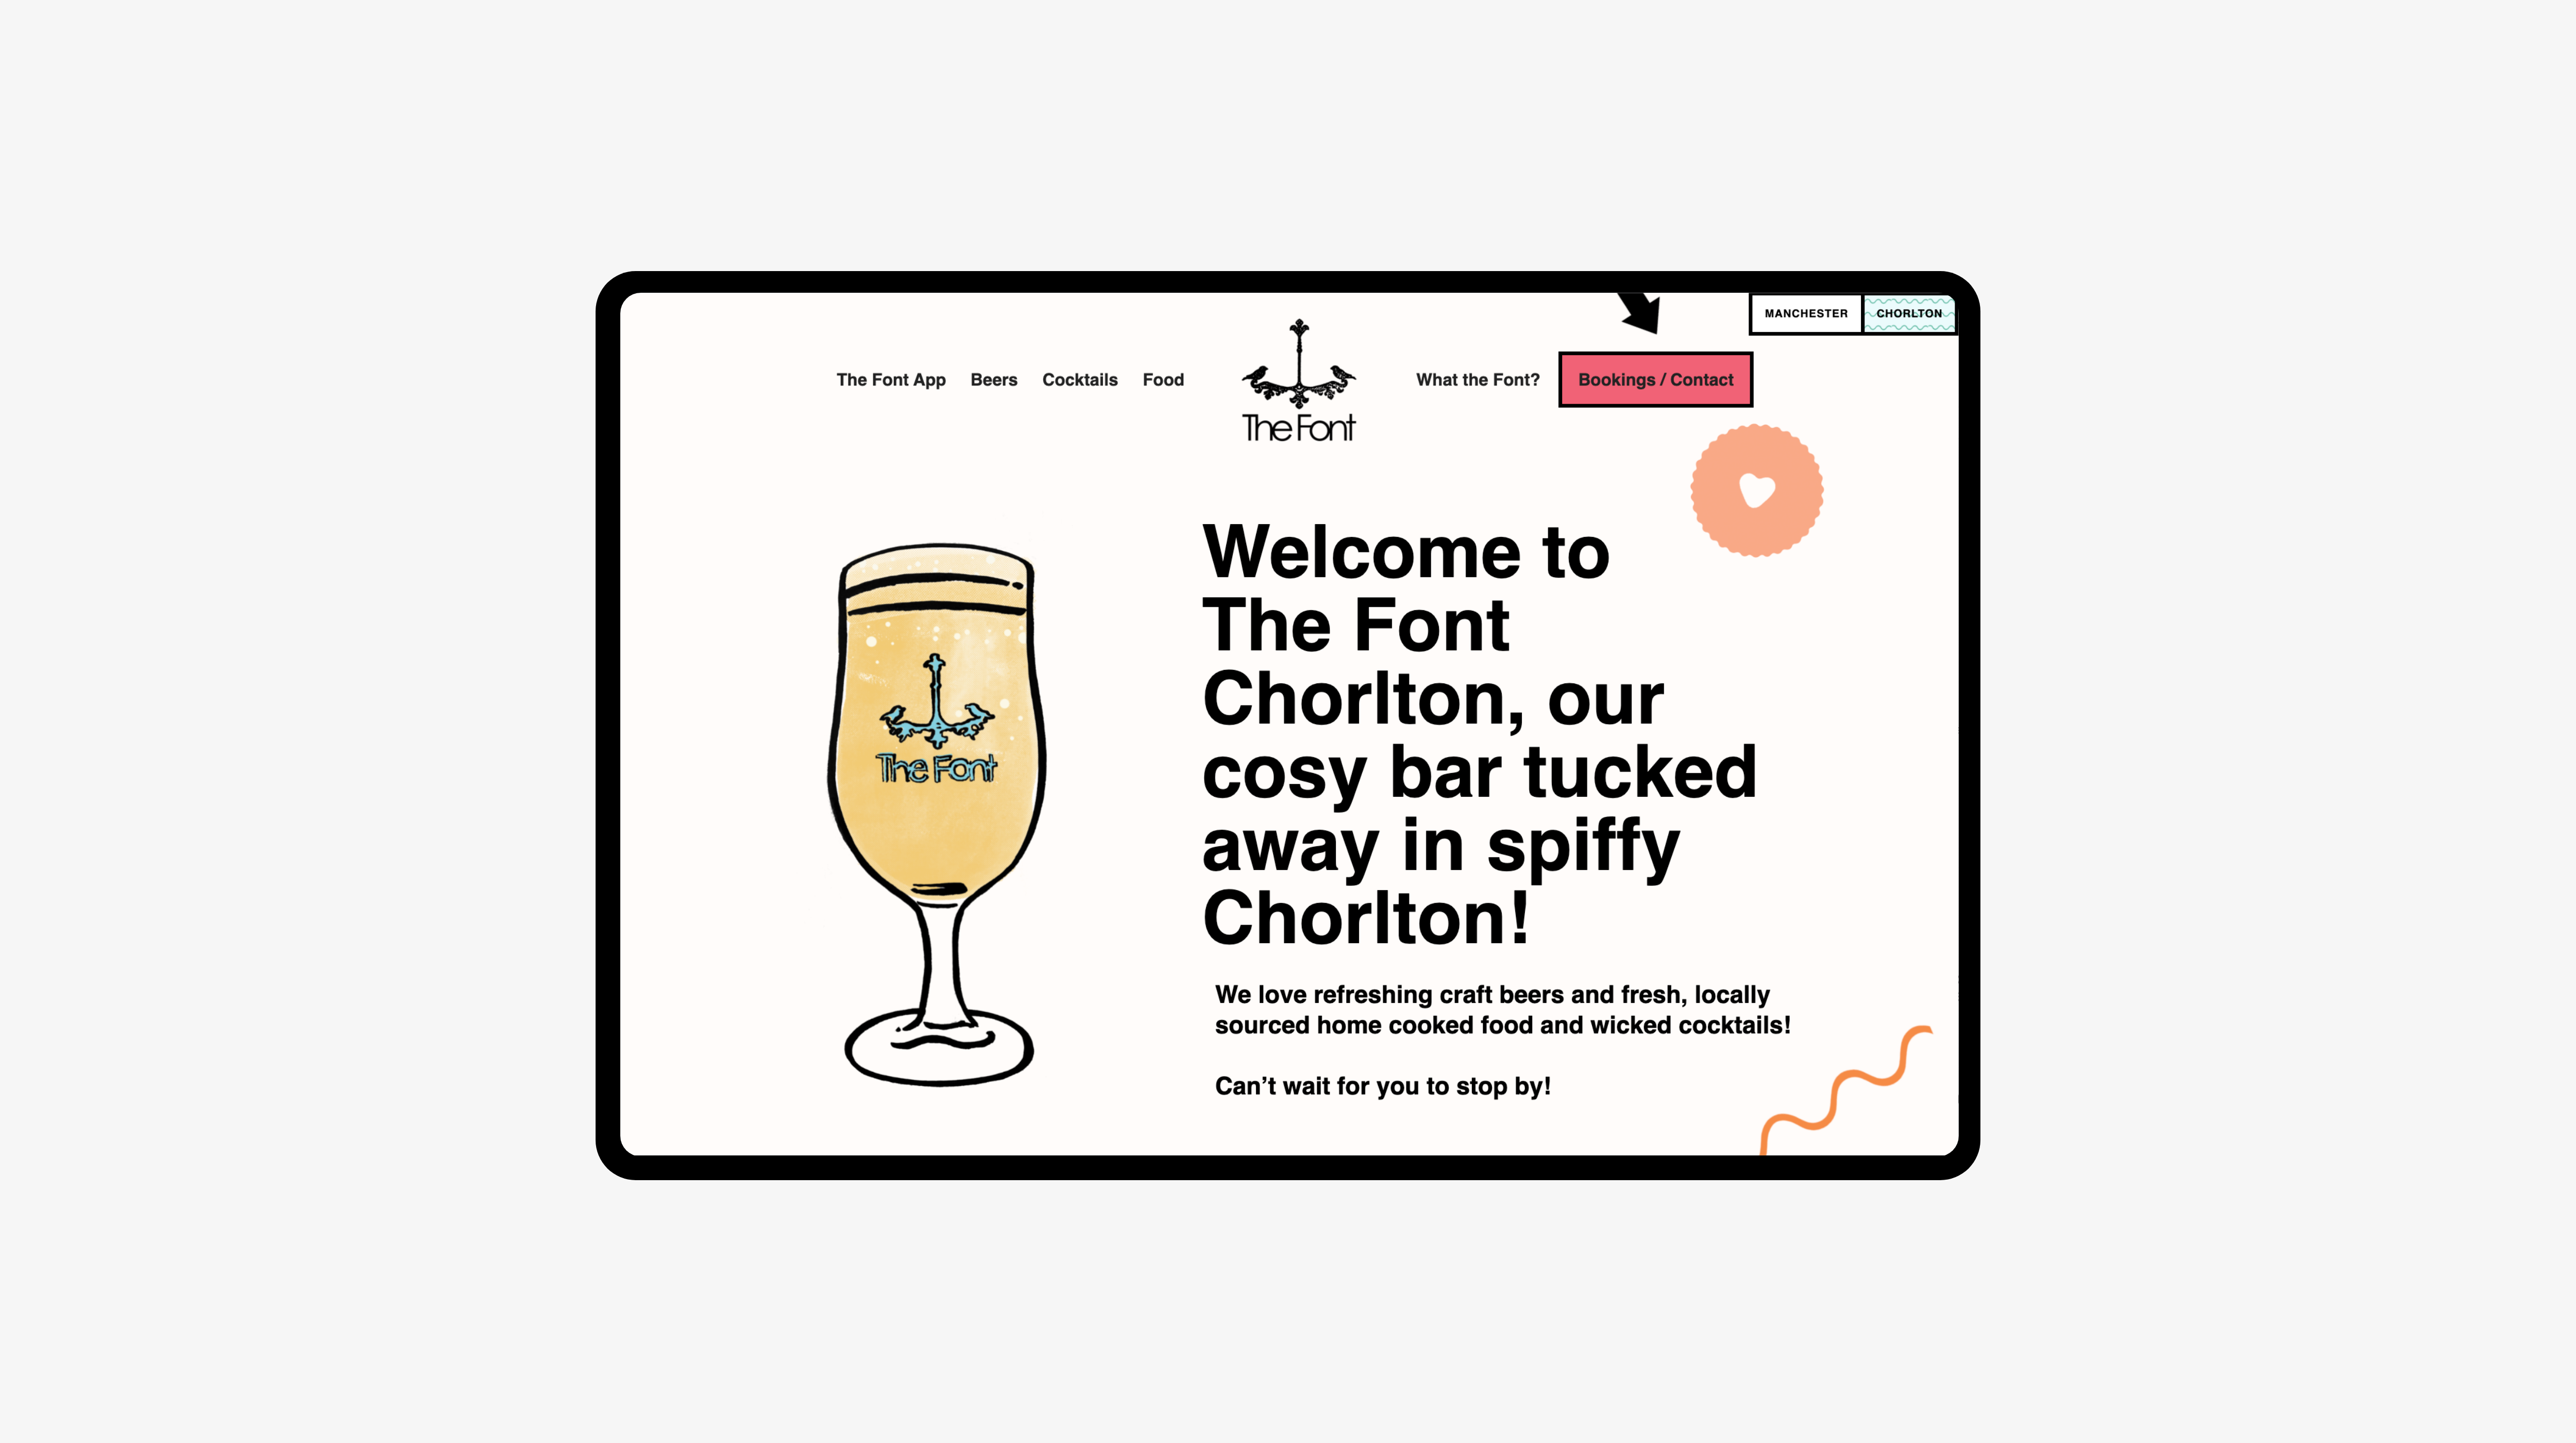 The Font Corlton home page